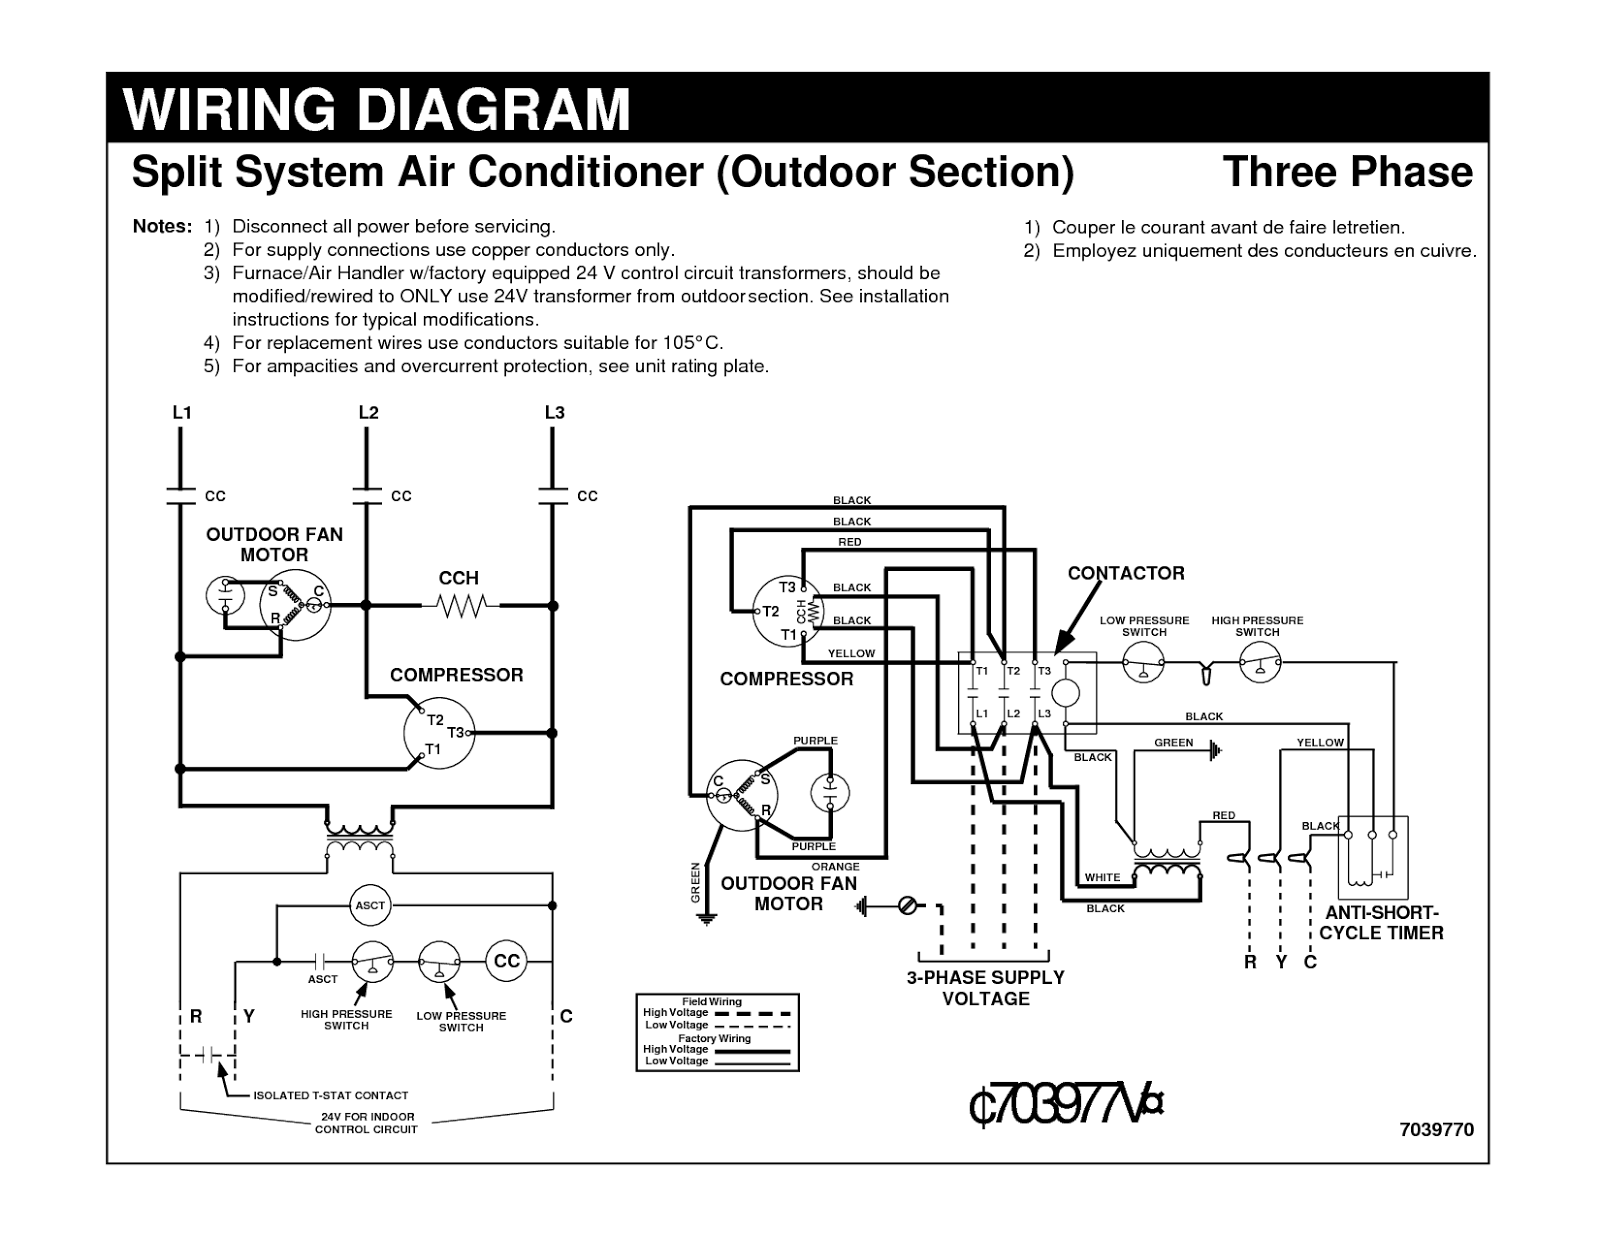 wiring+diagram+in+the+user+manual hvac wire diagram hvac disconnect wire diagram \u2022 wiring diagrams Coleman Air Conditioner at virtualis.co